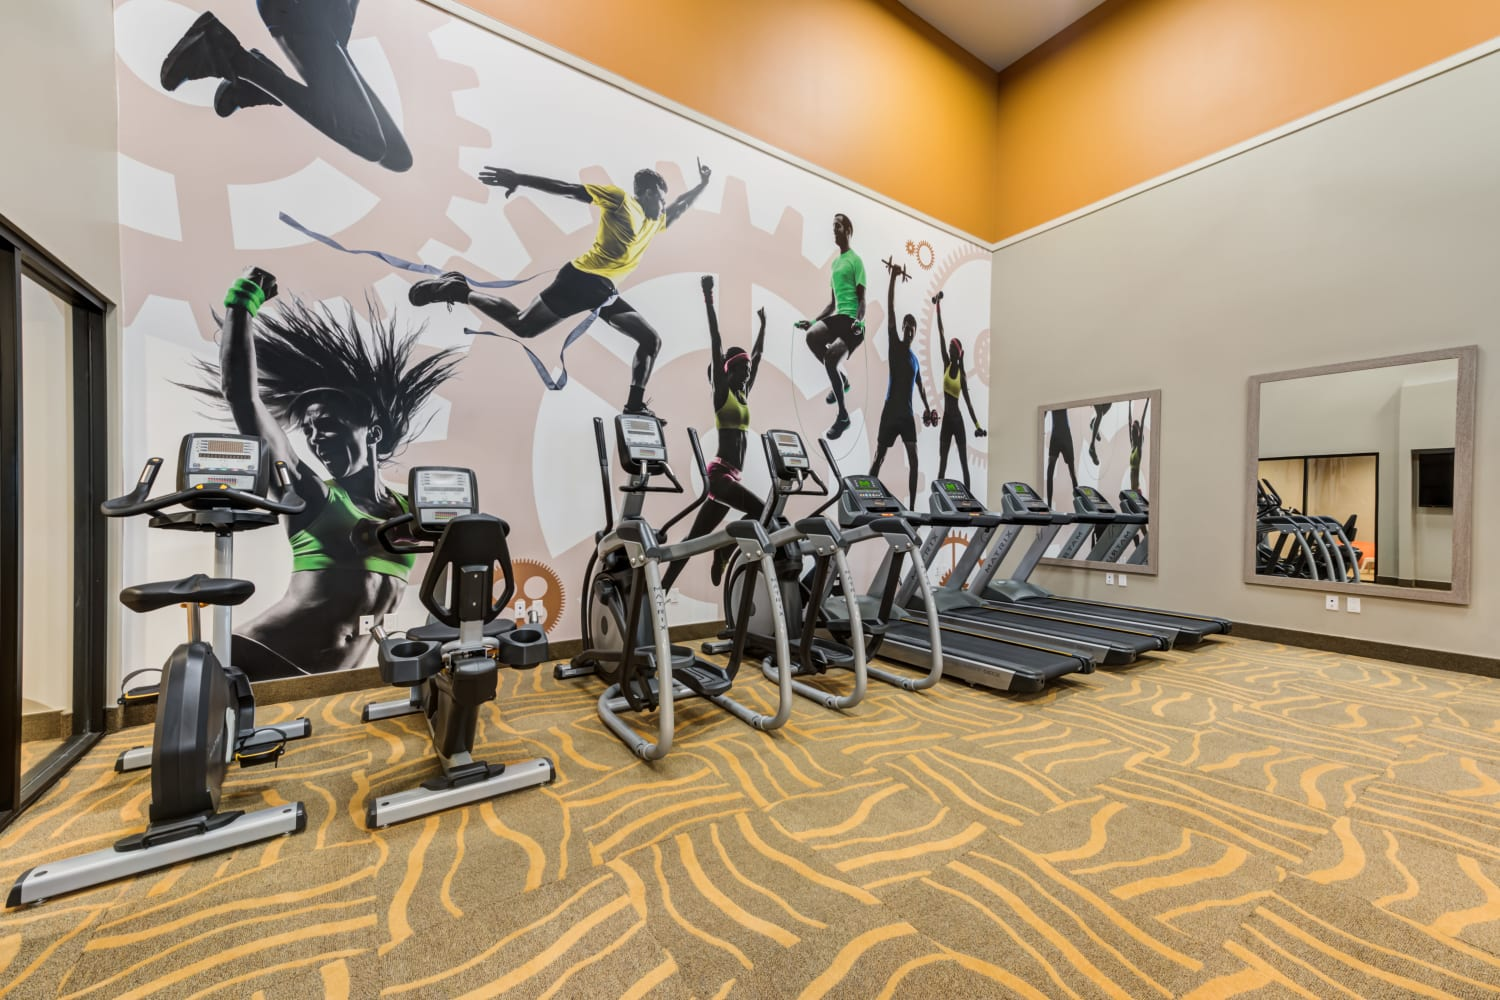 Modern exercise equipment in the fitness center at Sierra Heights Apartments in Rancho Cucamonga, CA